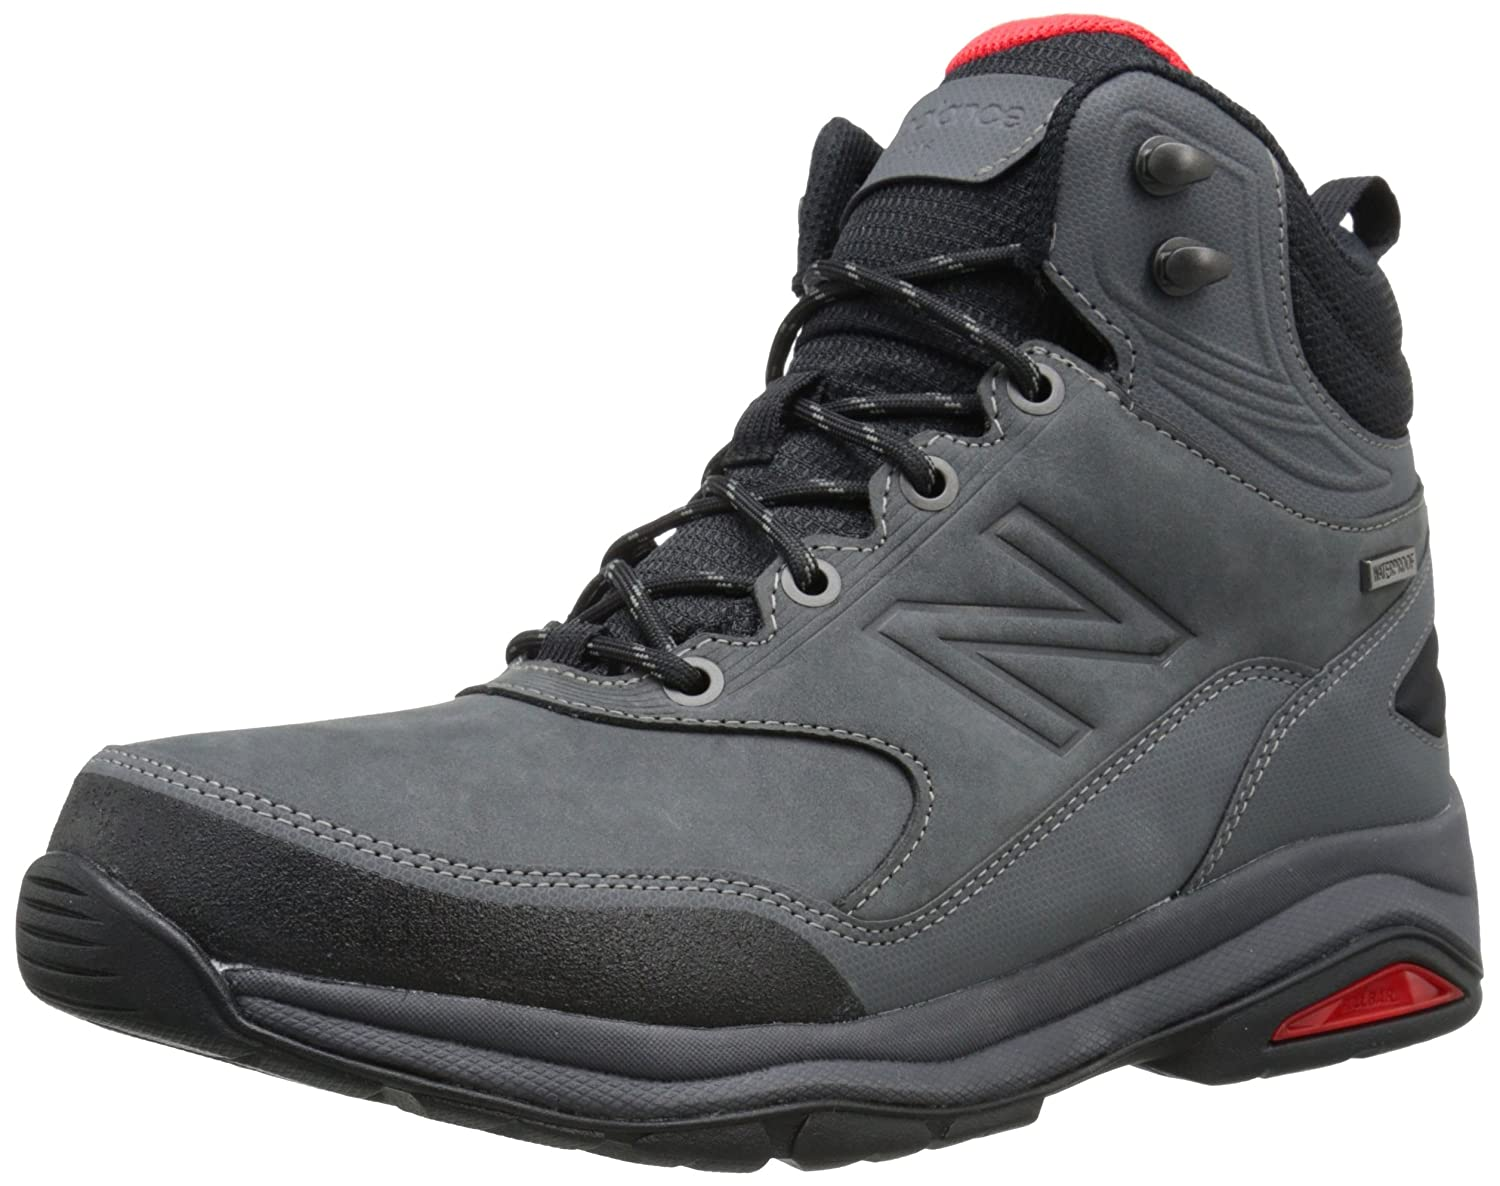 New Balance Hombre MW1400 Walking Trail Boot, Grey, 43 EU: Amazon.es: Zapatos y complementos